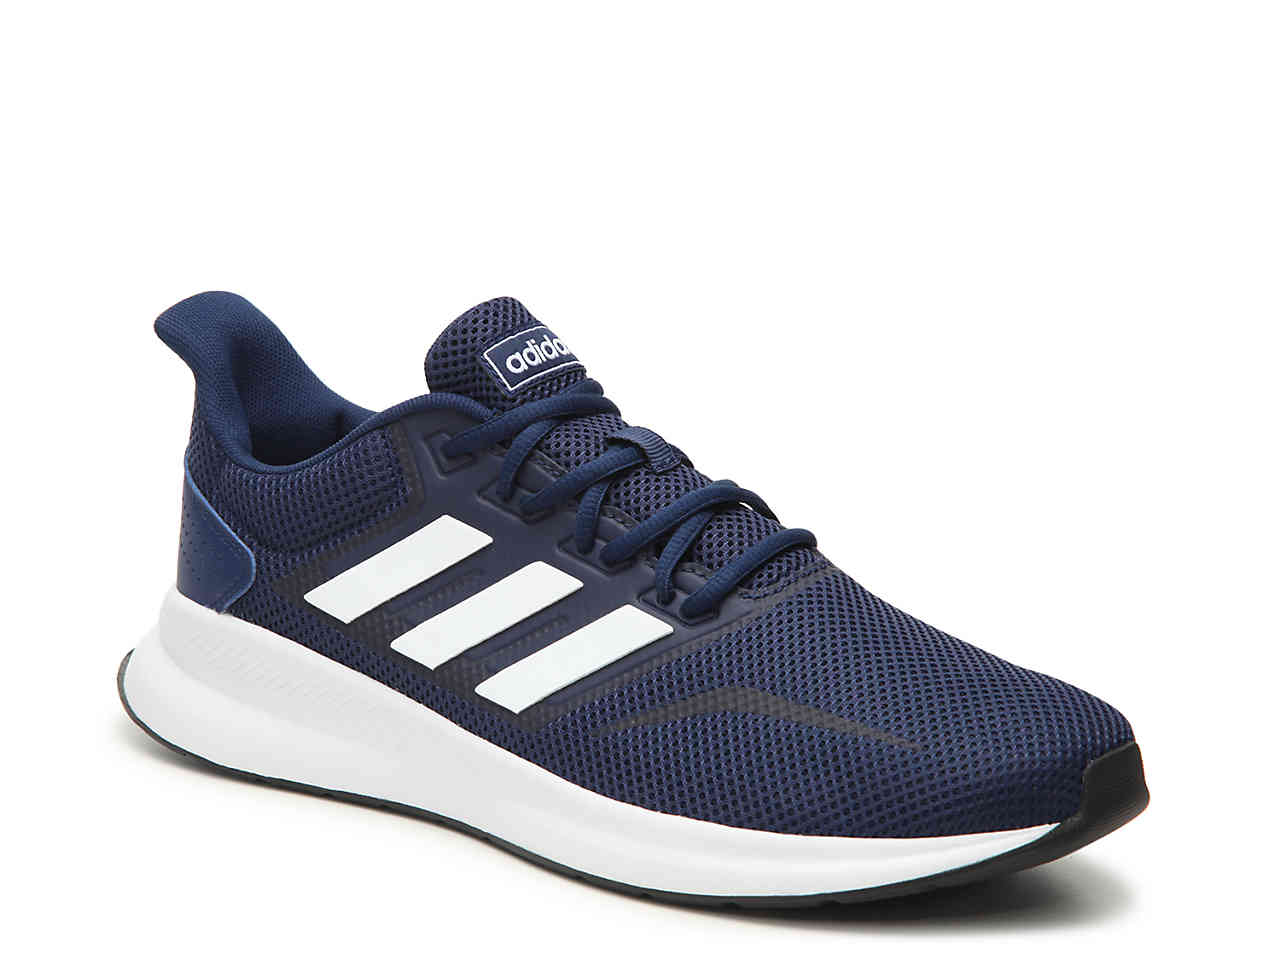 Adidas Shoes For Running : Adidas Online Best Price